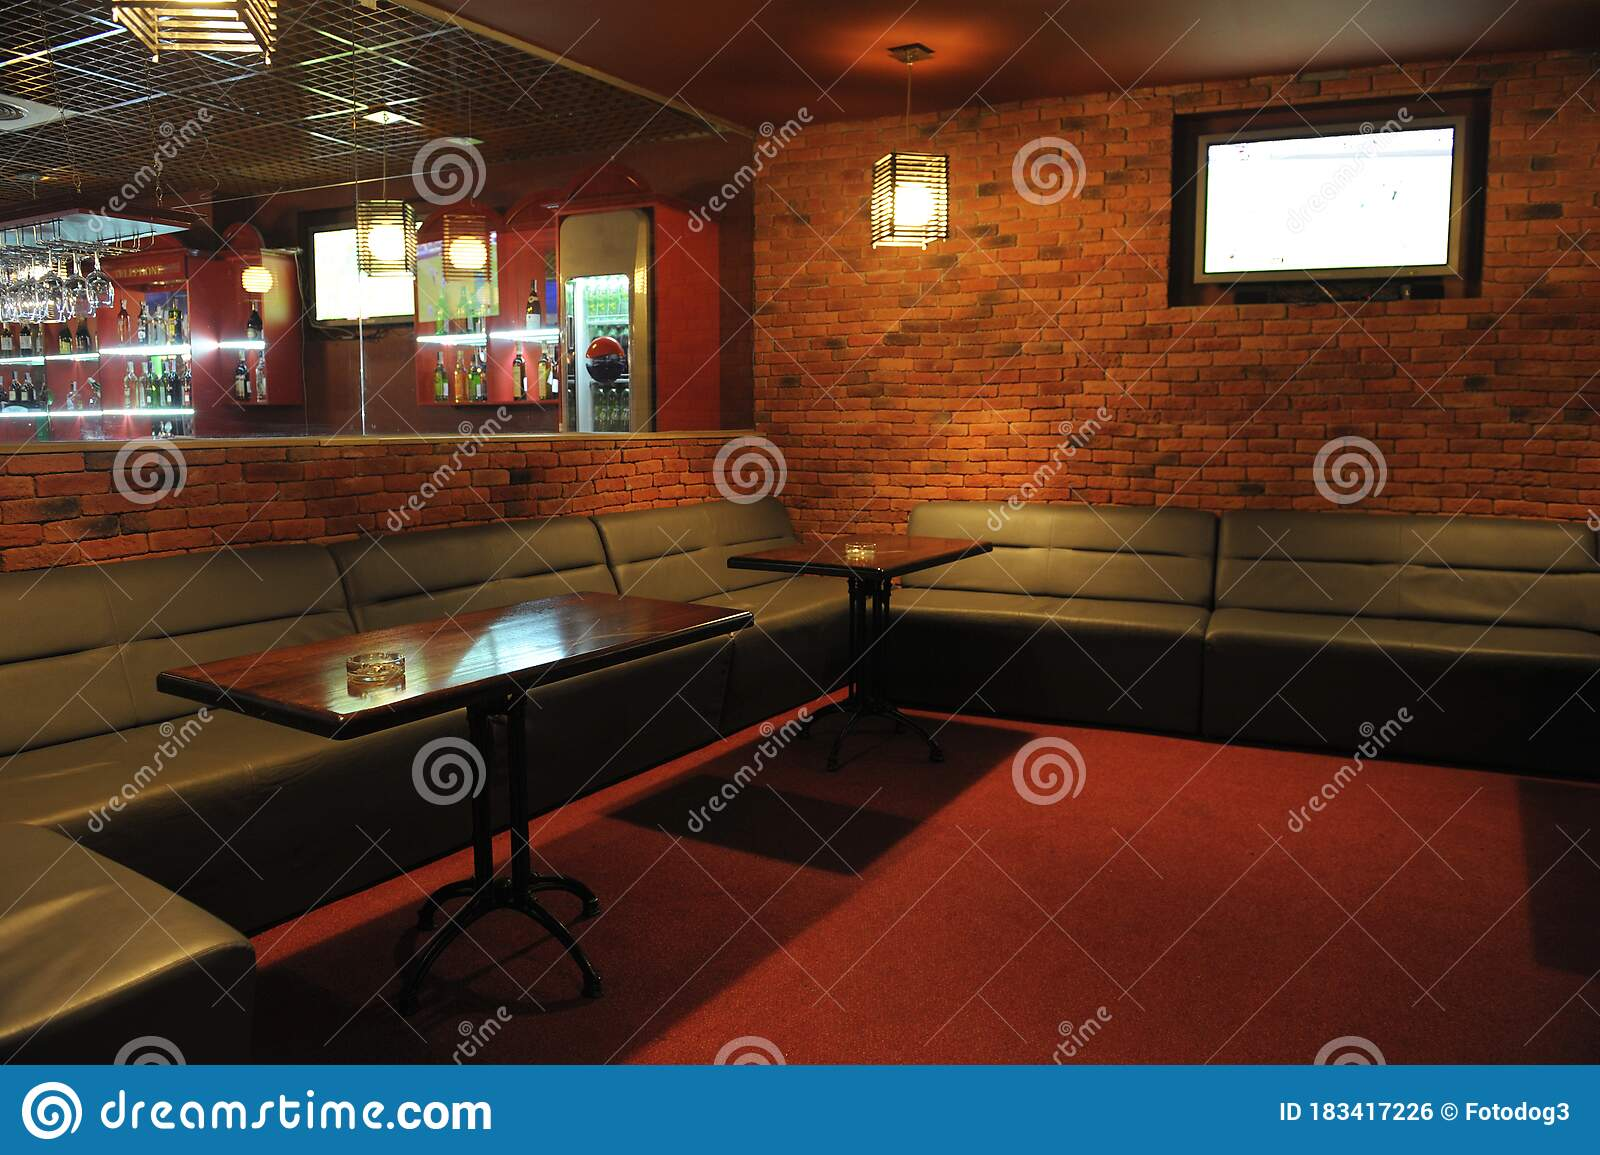 67 626 Red Color Restaurant Photos Free Royalty Free Stock Photos From Dreamstime